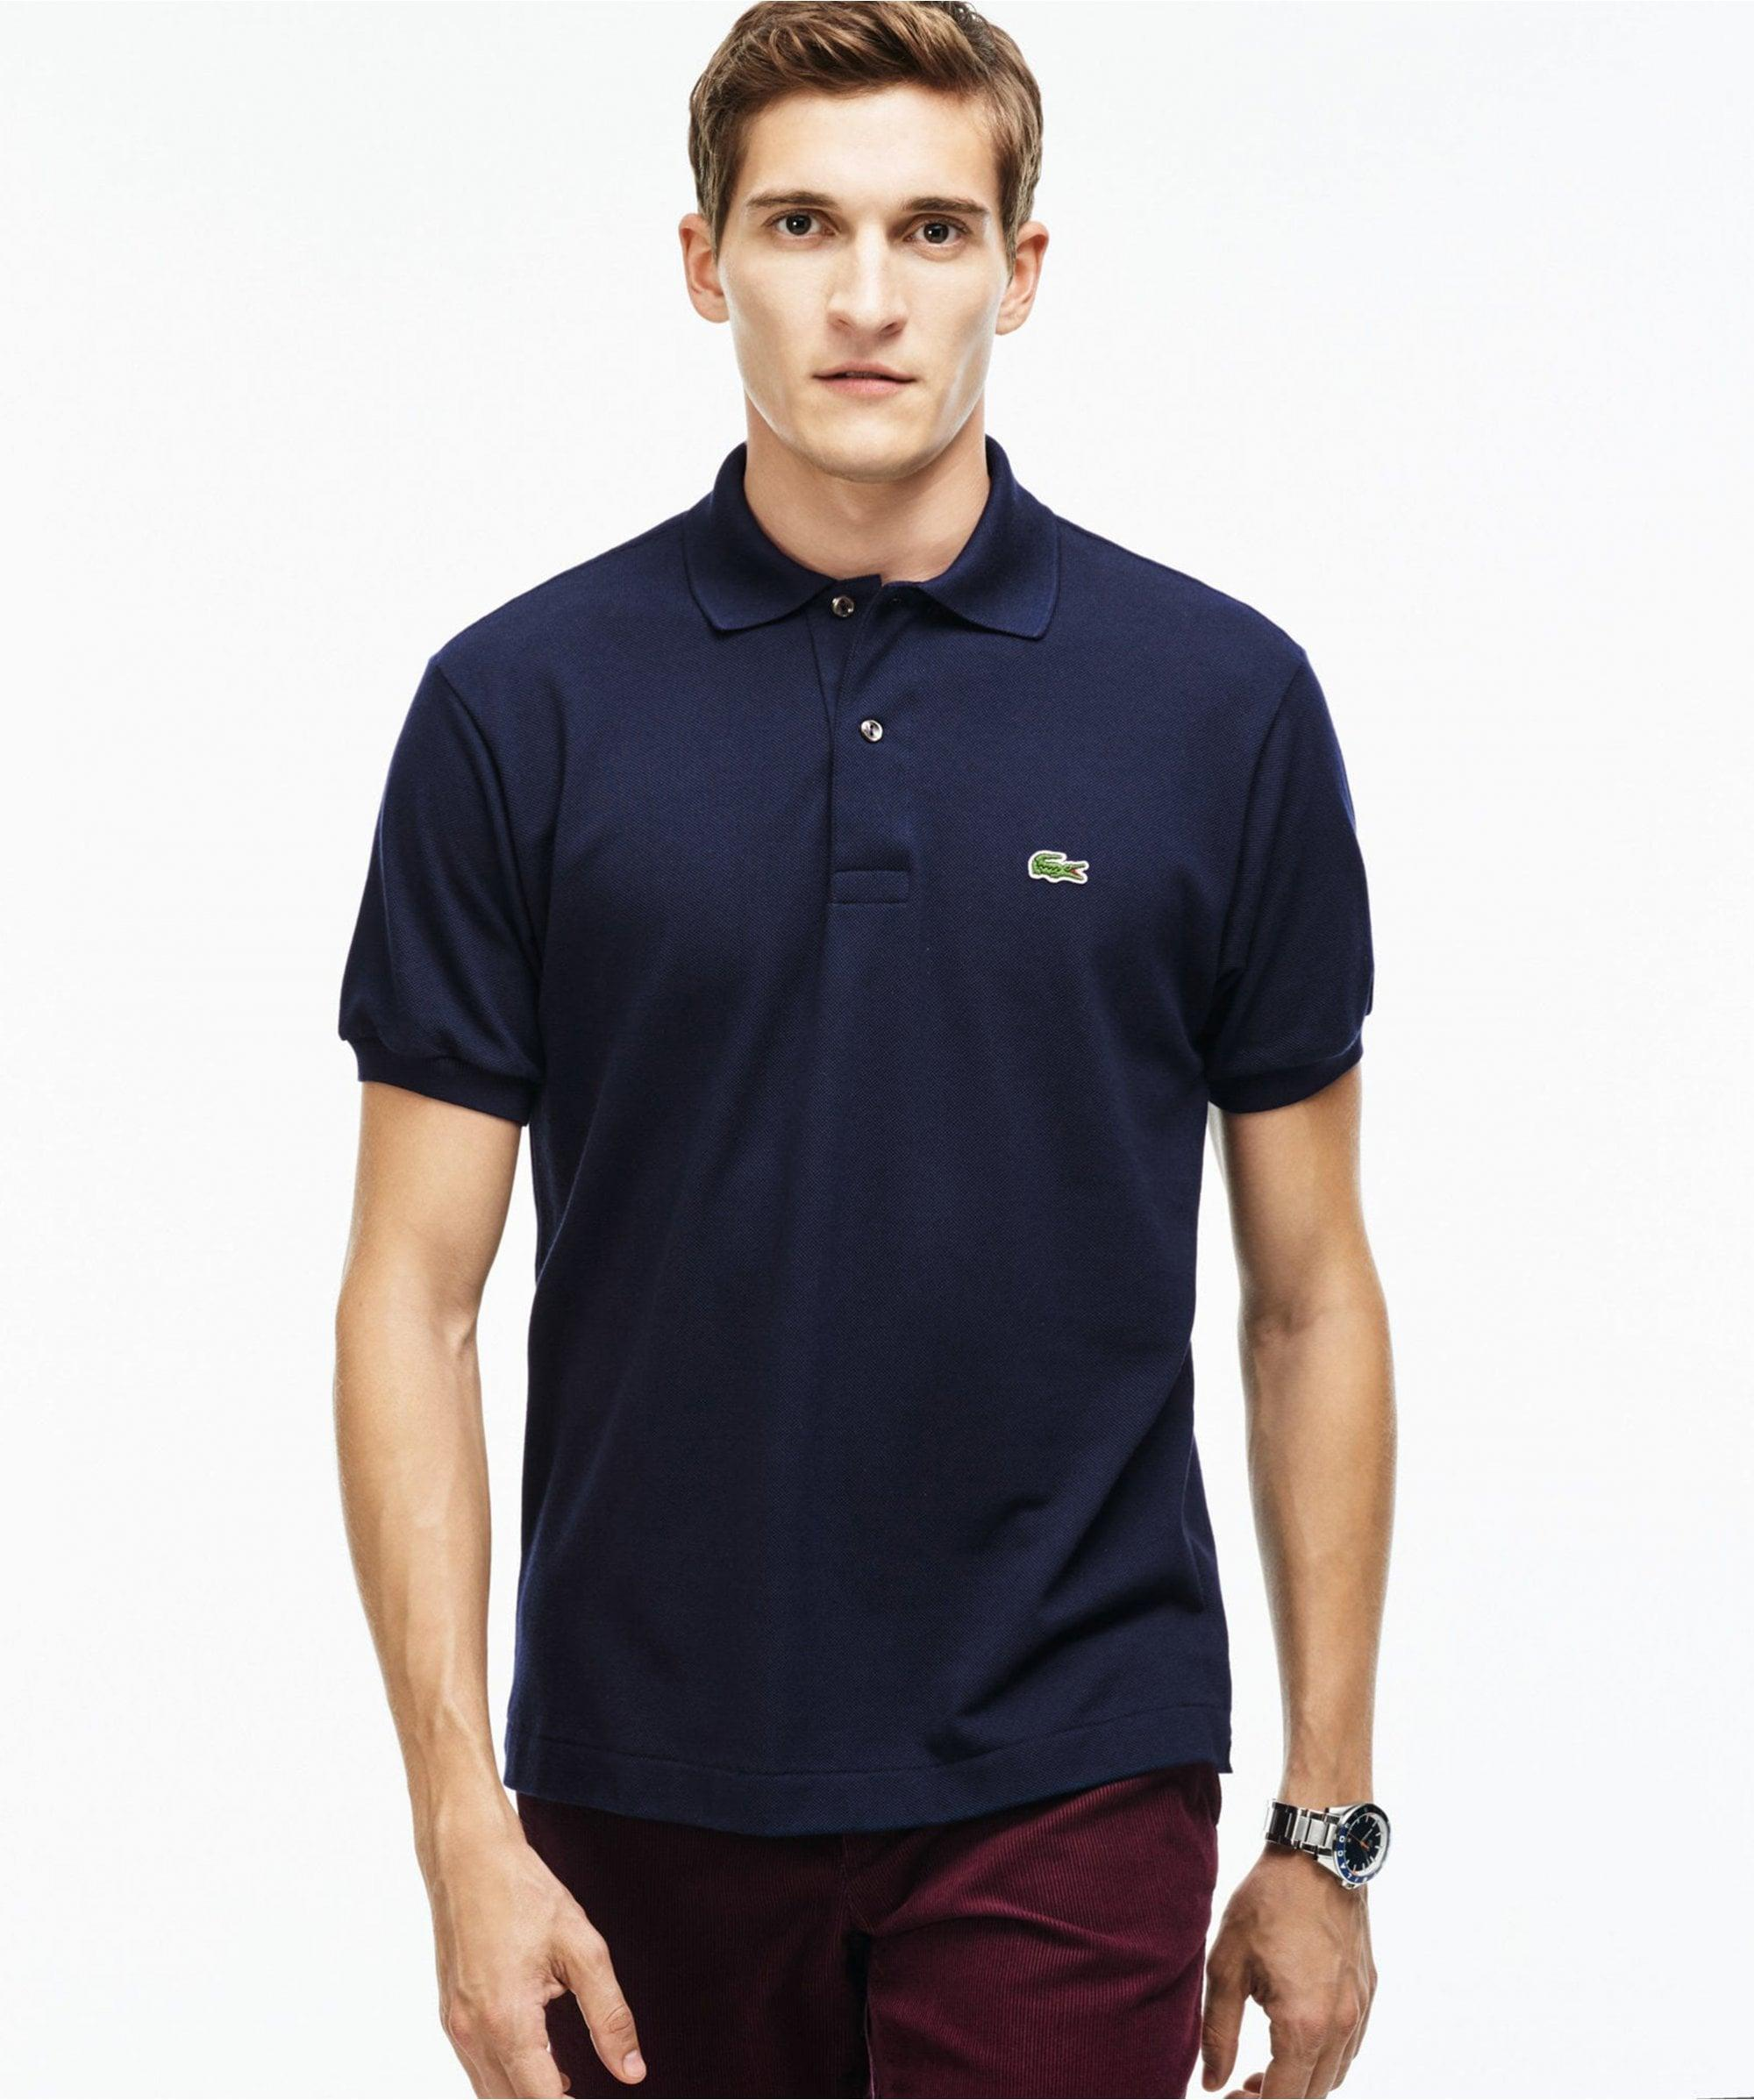 9d4ef322f Lyst - Lacoste L.12.12 Polo Shirt in Blue for Men